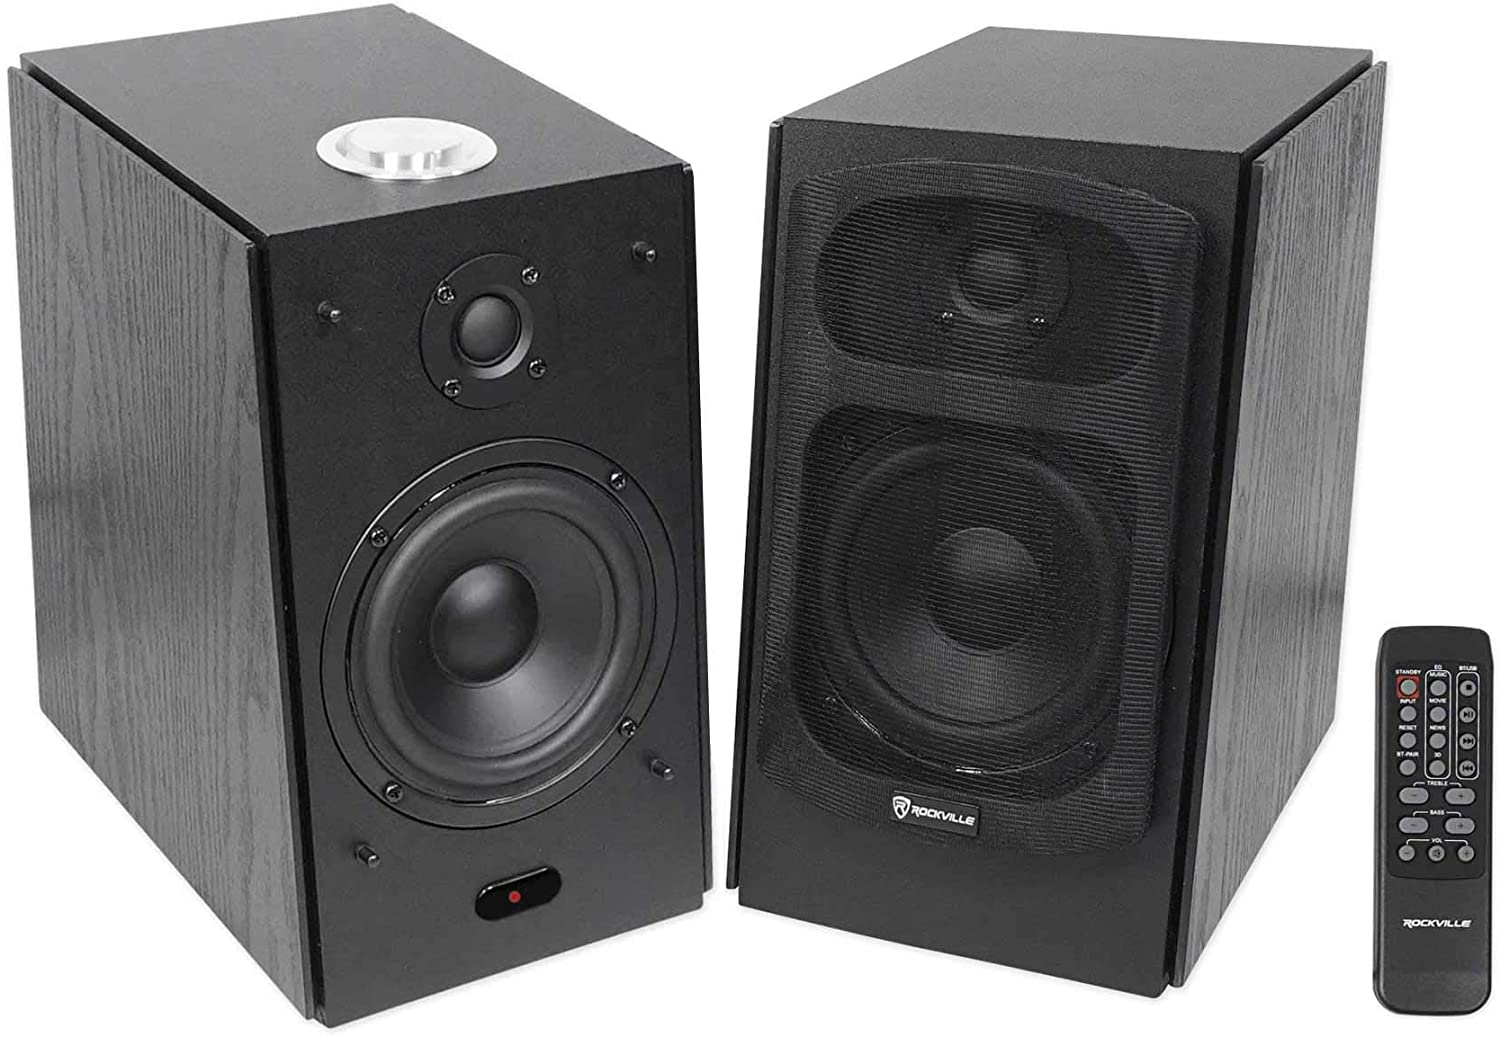 (2) Speaker Home Theater System for Sony X800E Television TV - in Black 71KxyeKwx1LSL1500_